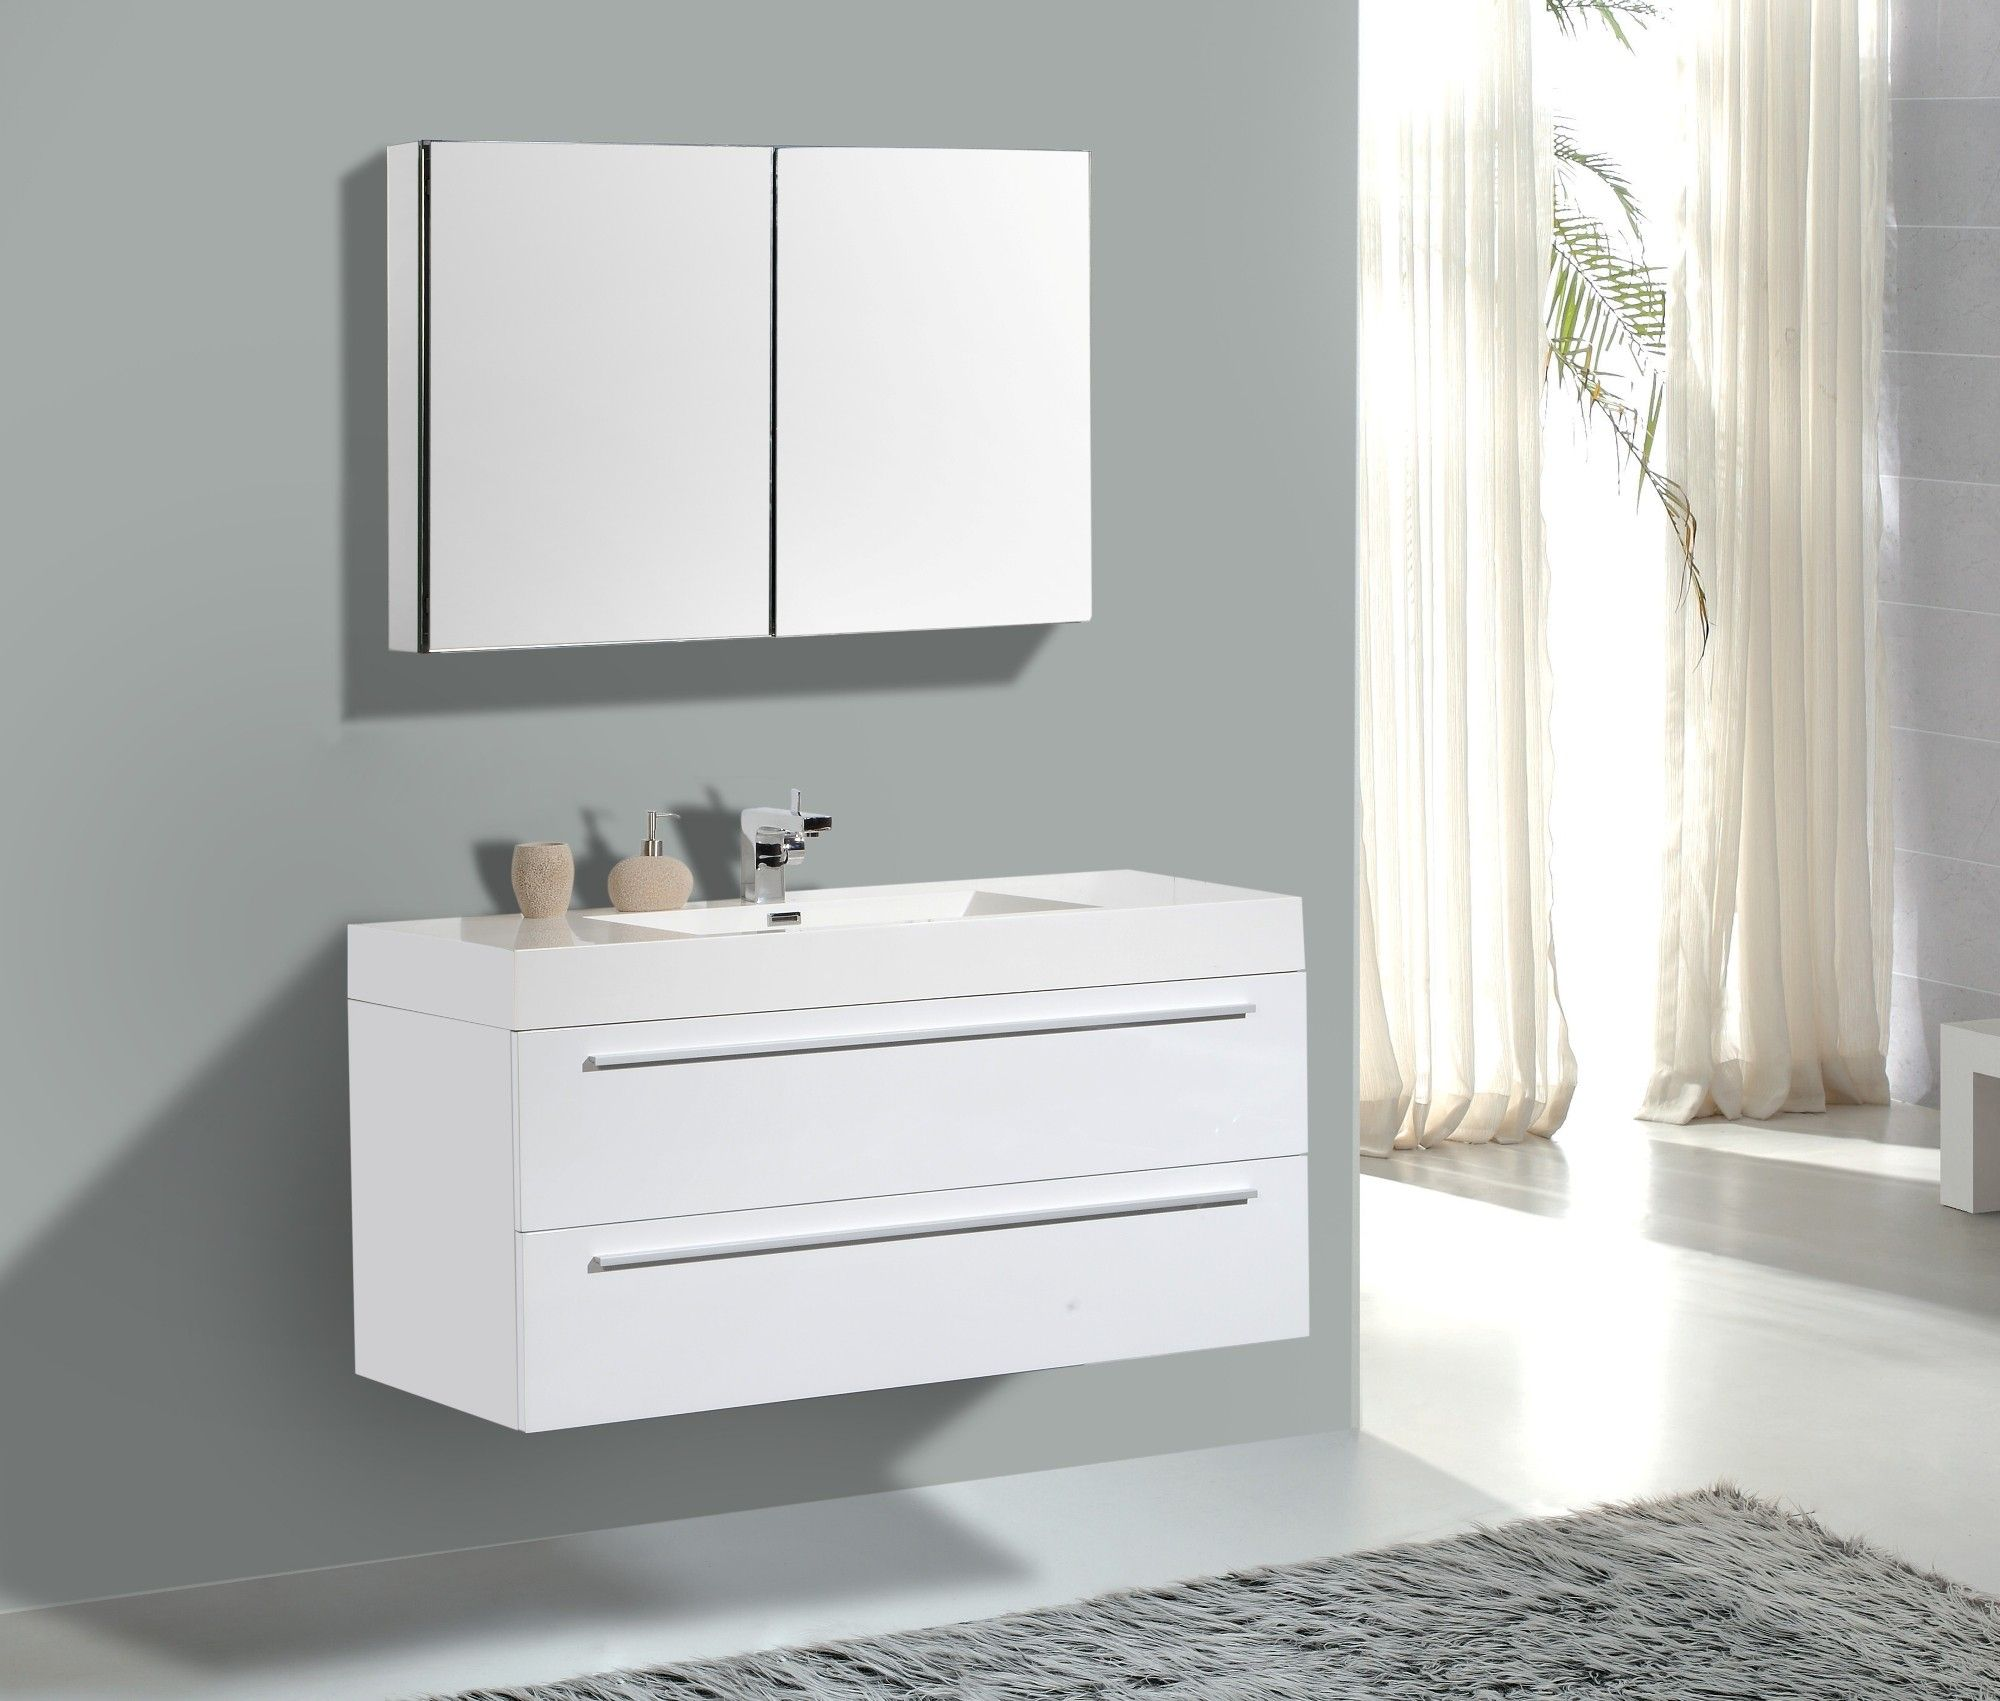 Aqua decor maya 47 modern bathroom vanity set w medicine cabinet white vanities 41 to 50 White bathroom vanity cabinets